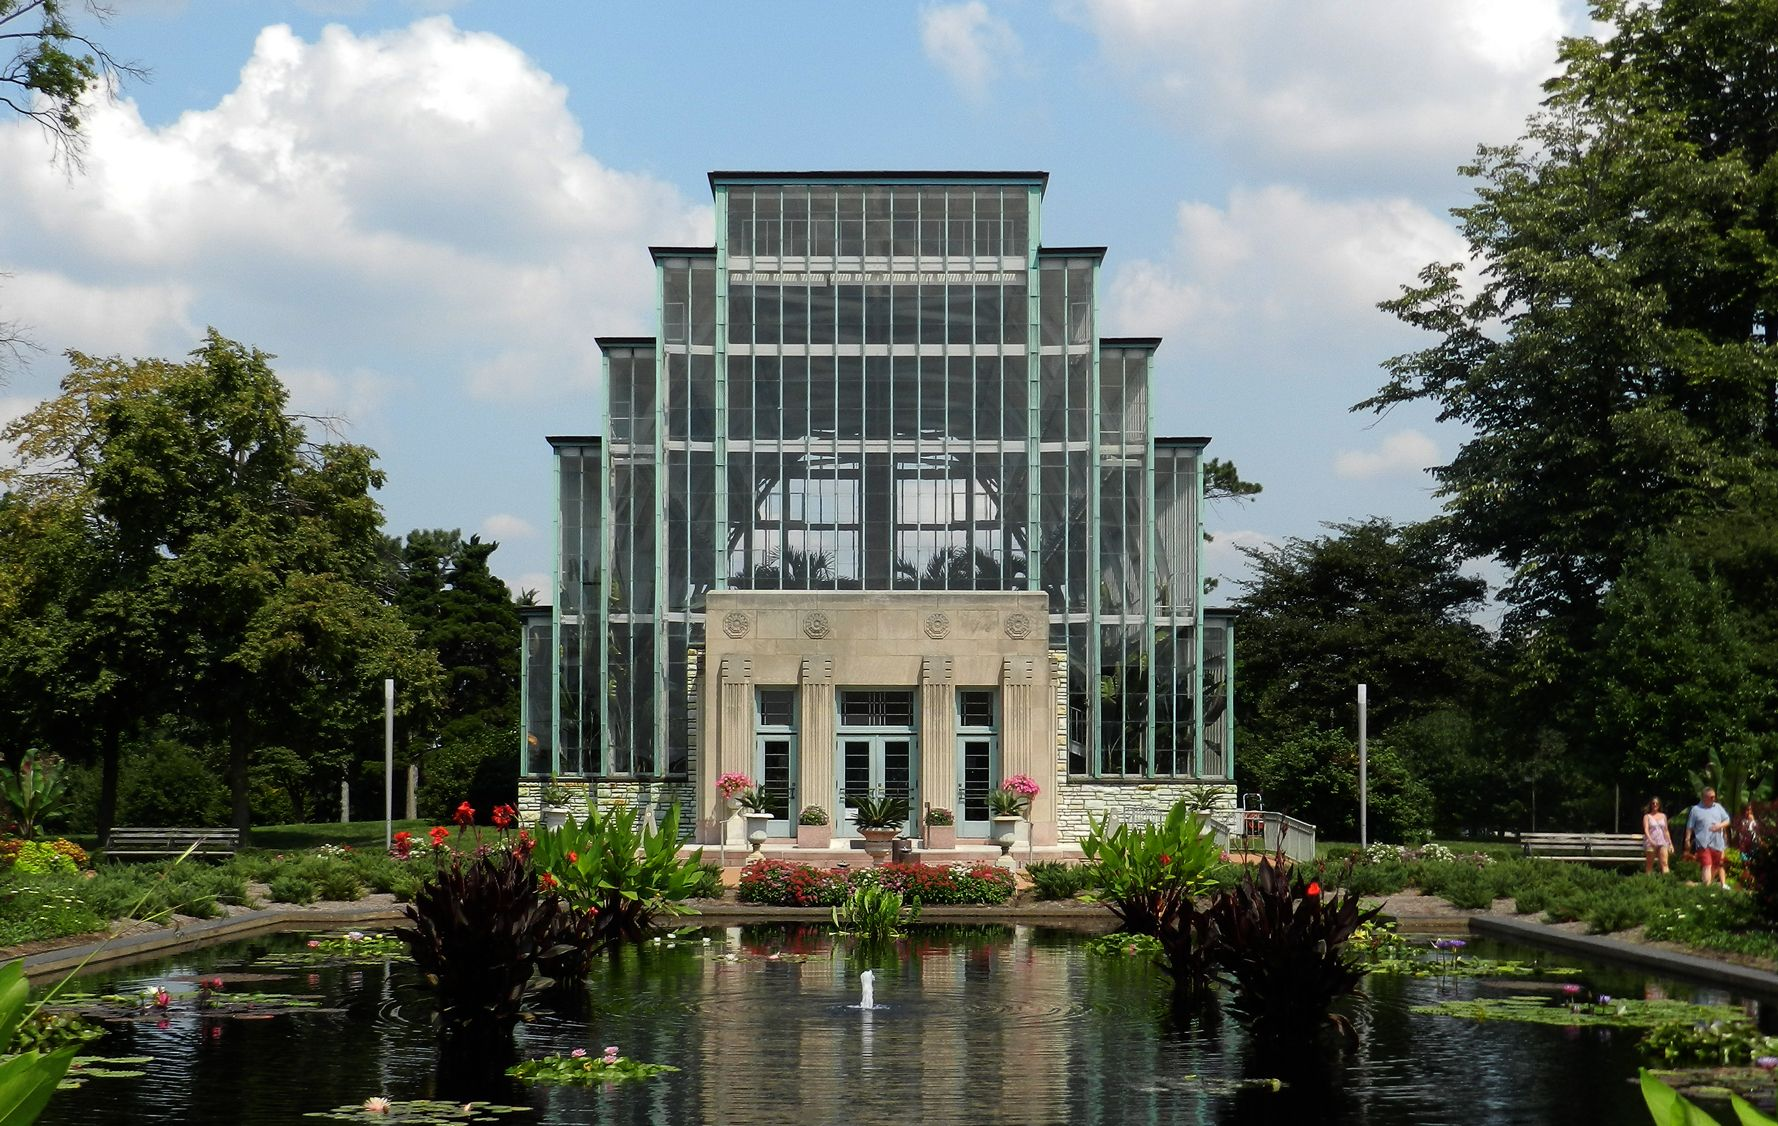 St. Louis jewel box building